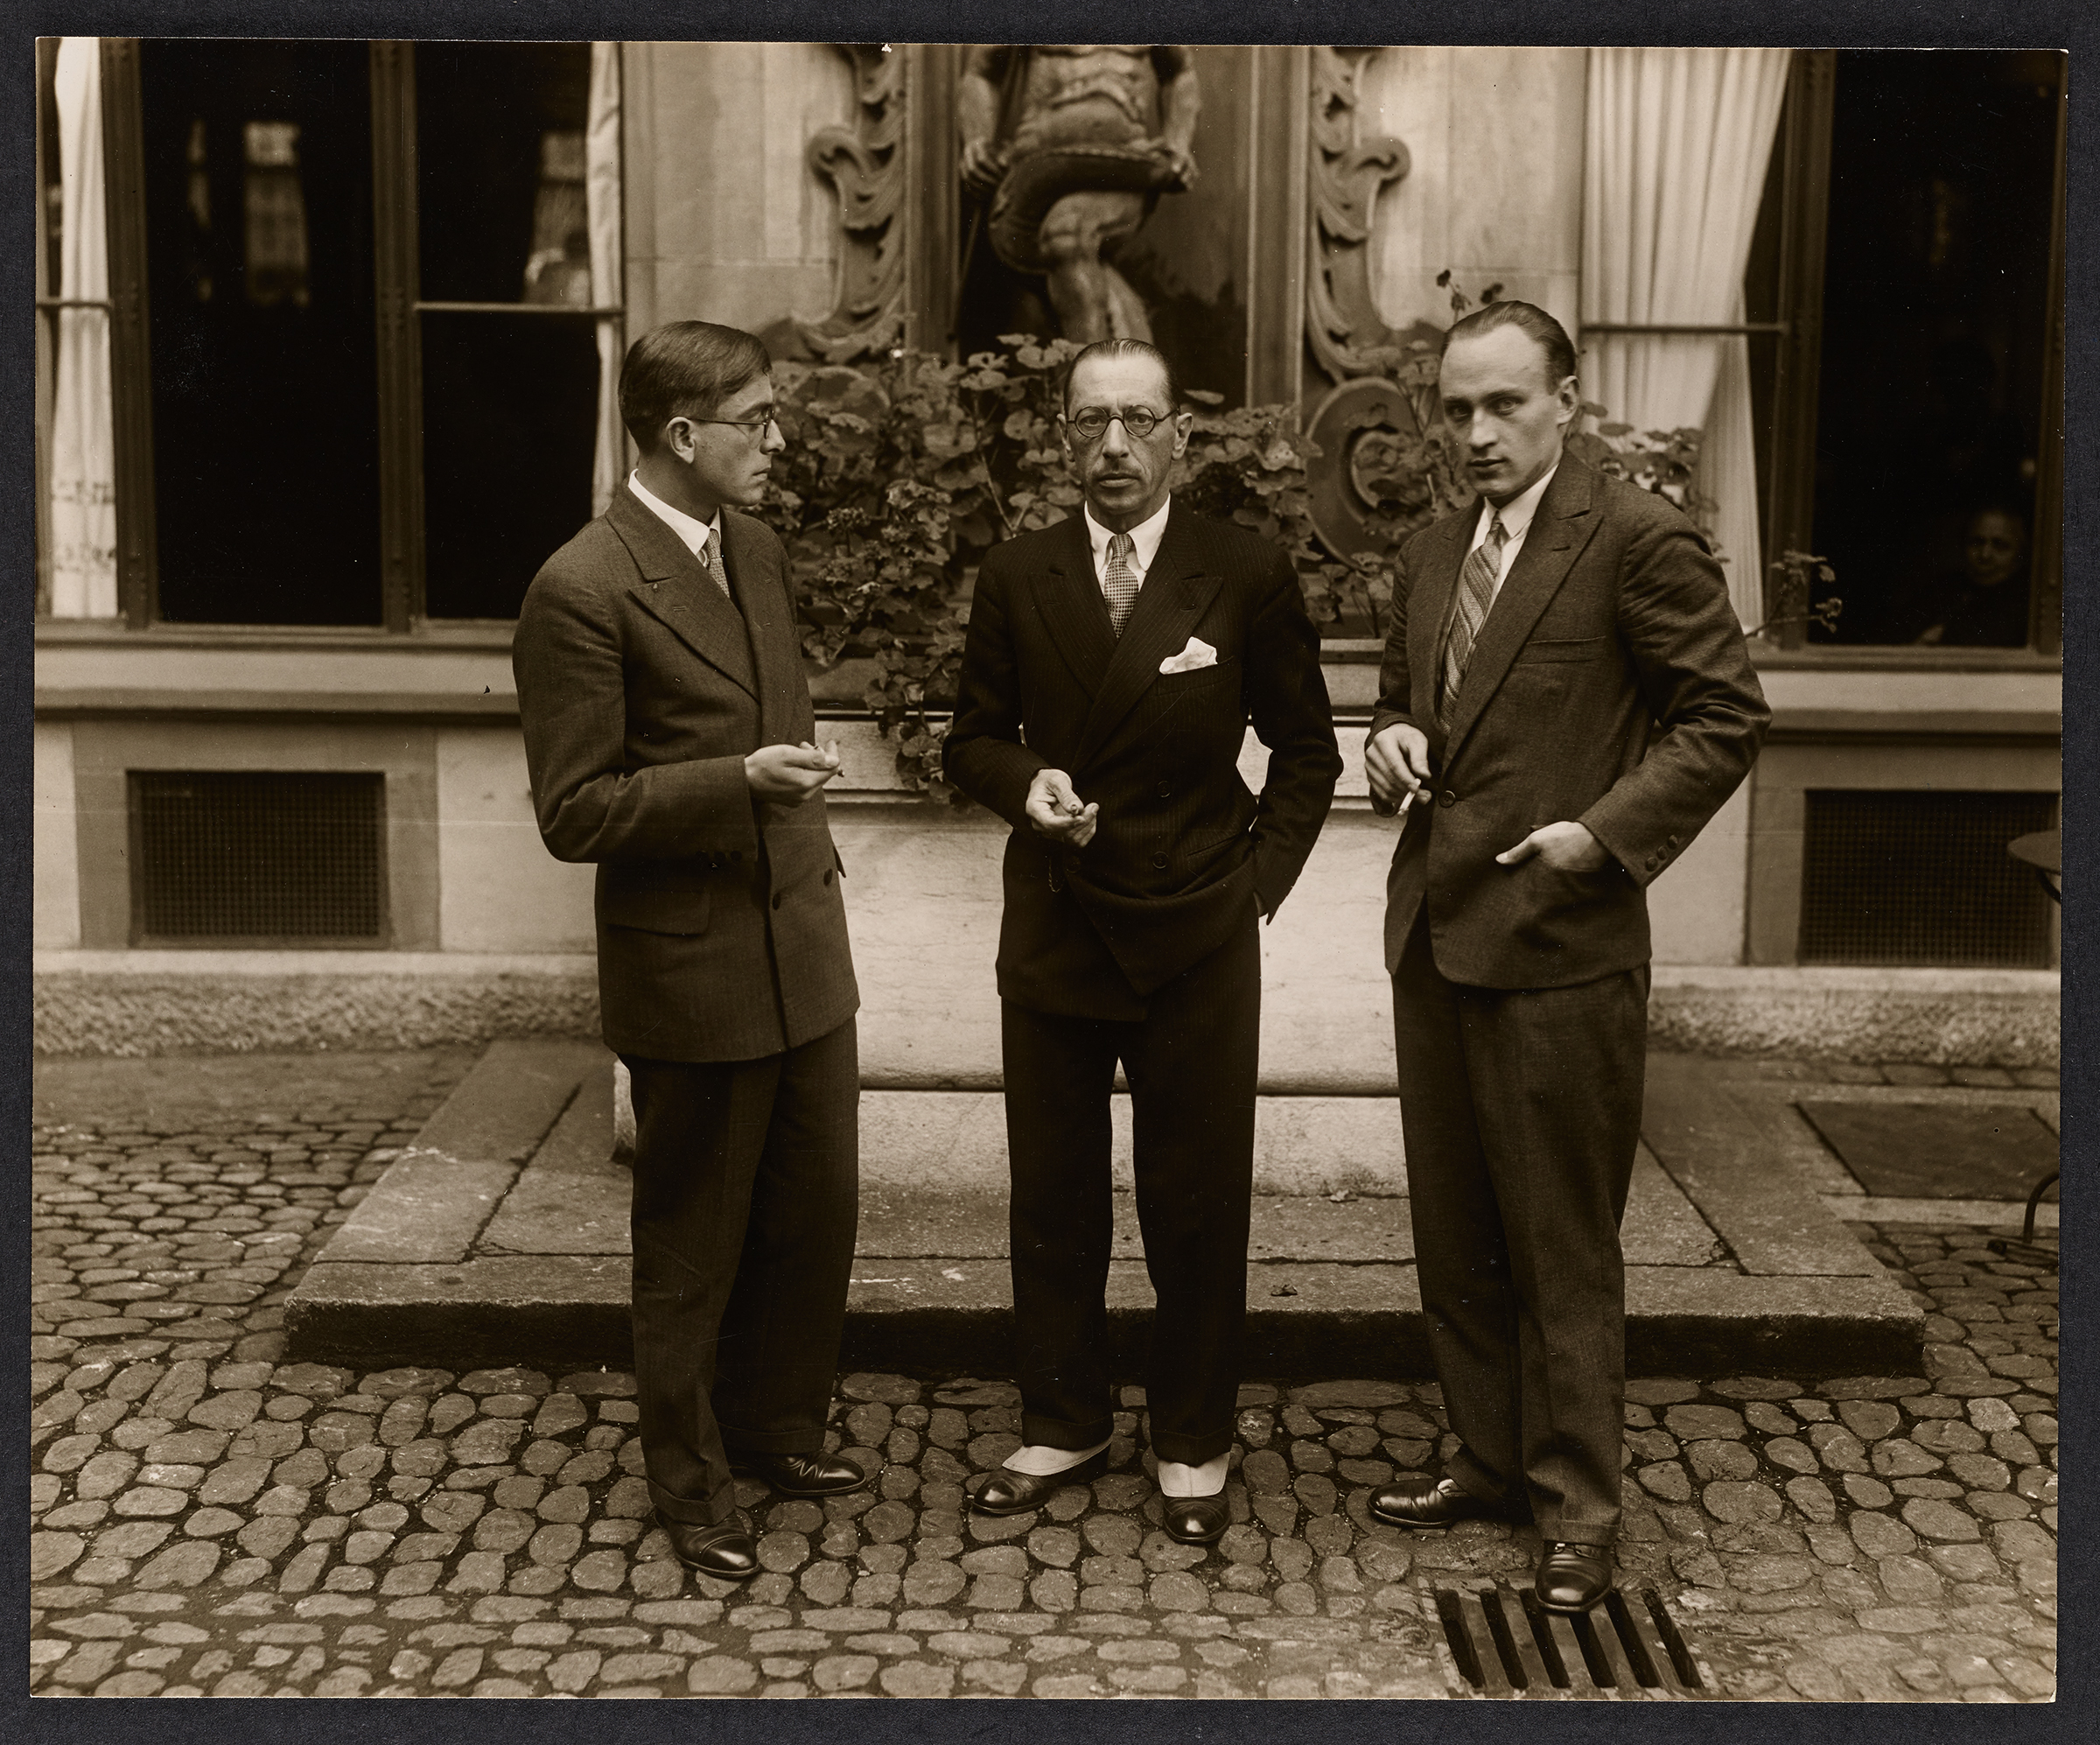 Igor Stravinsky with Paul Sacher (on the right) and Conrad Beck (on the left) 1929 after a concert in Basel. © Paul Sacher Stiftung